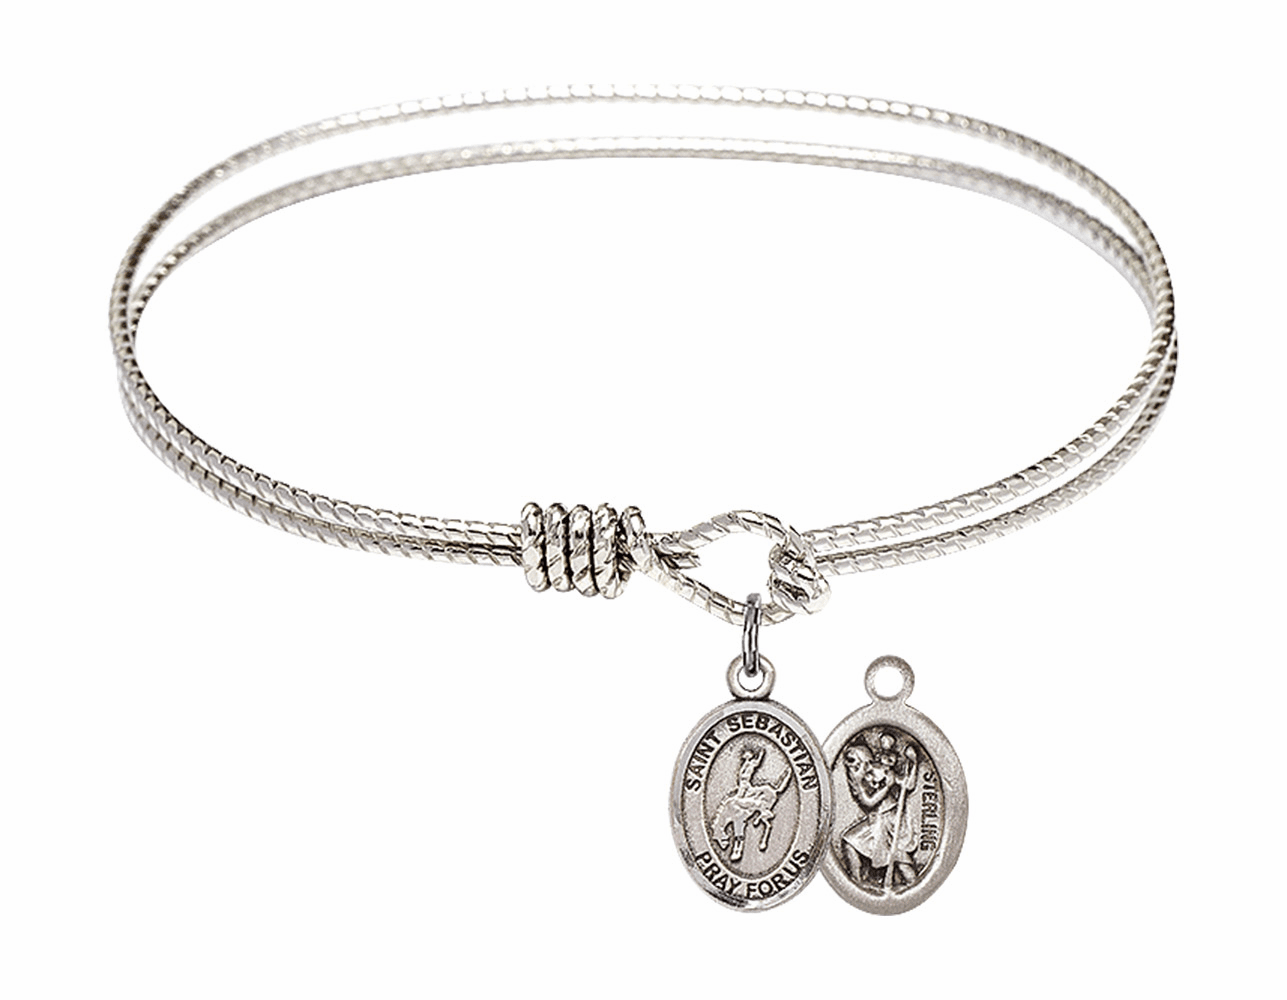 Twist Round Eye Hook St Sebastian Rodeo Bangle Charm Bracelet by Bliss